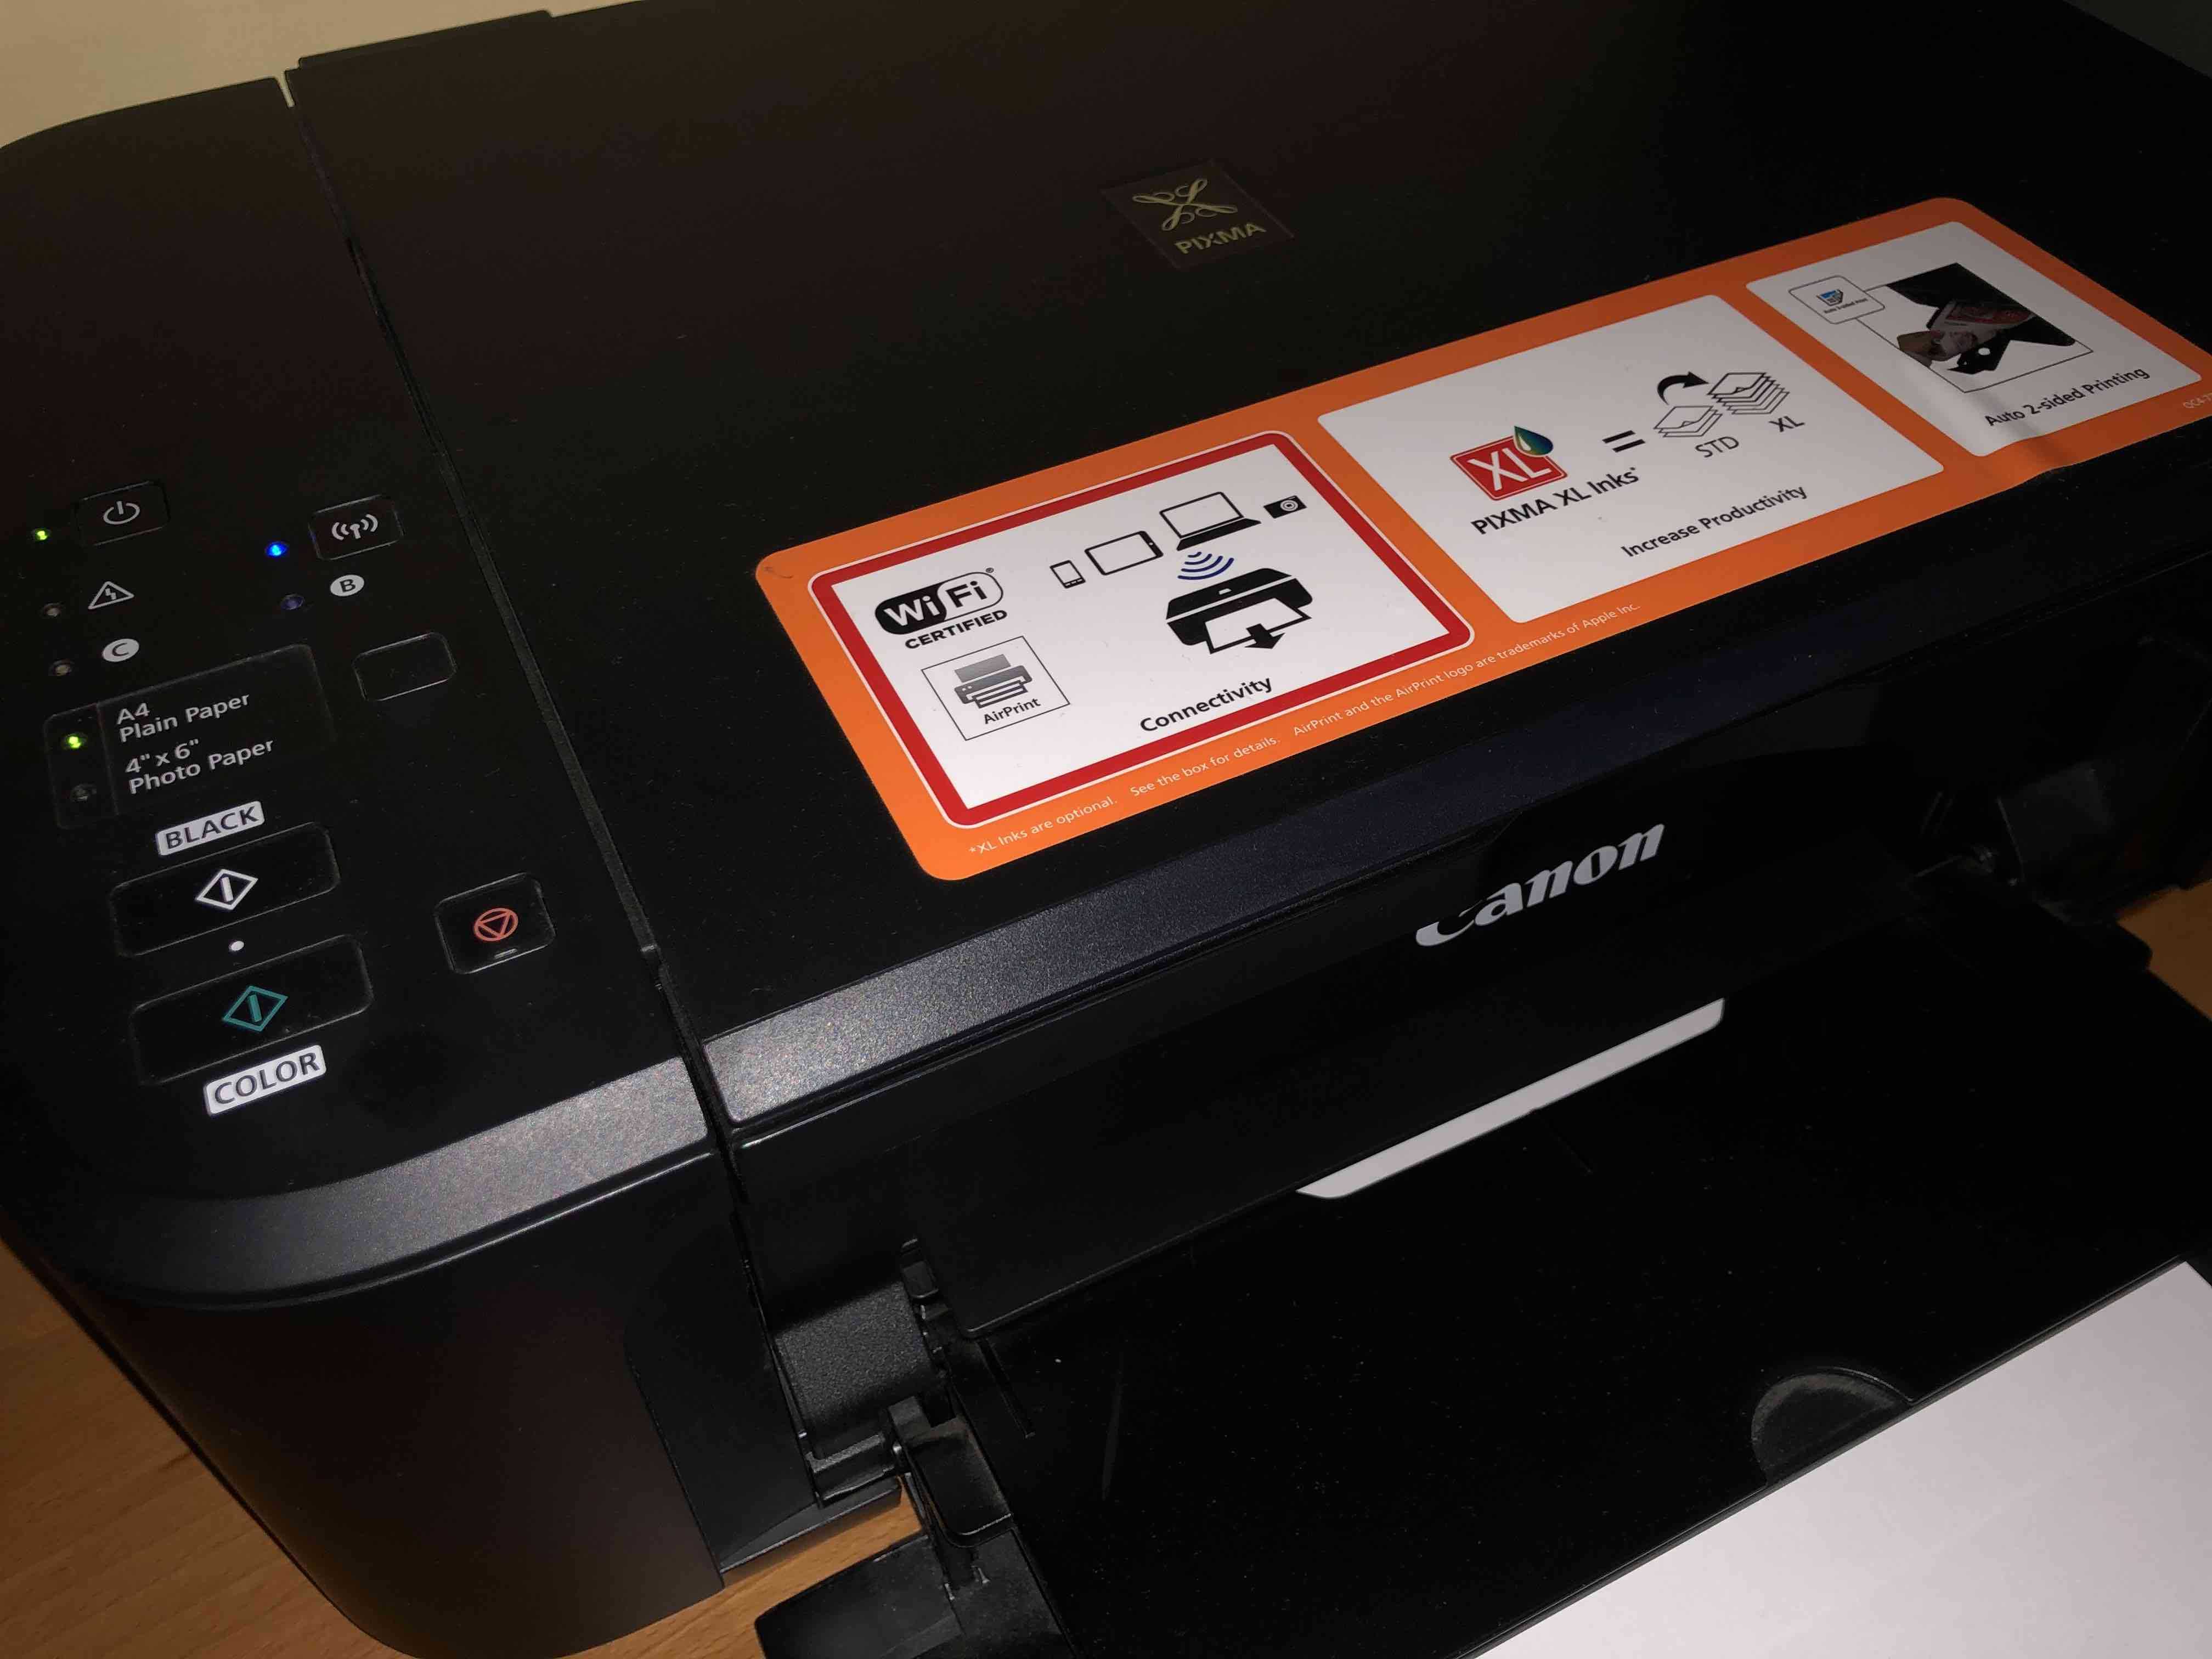 Canon IJ Scan Utility 2.3.7 is now working on Mac OS Catalina